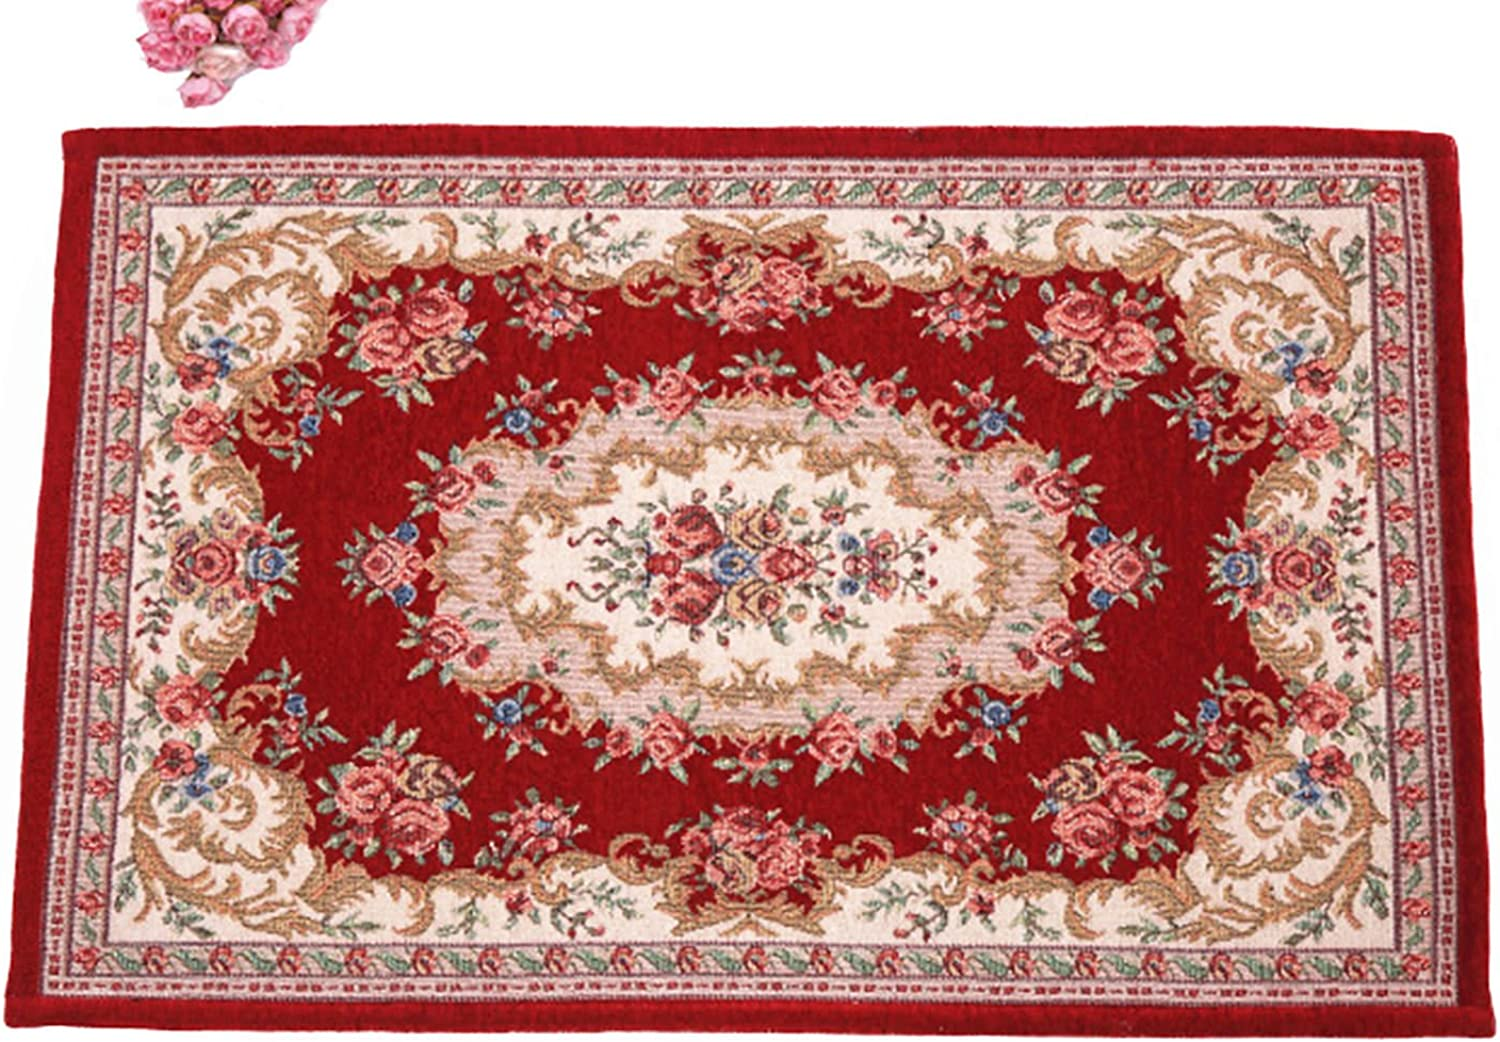 Belimely Carpet Mats European Carpet Living Room Door Mats Non Slip Mats Ruhumen Jacquard Sofa Table Easu Clean Soft Plush Be-dm-19-Red-23.62  x35.43